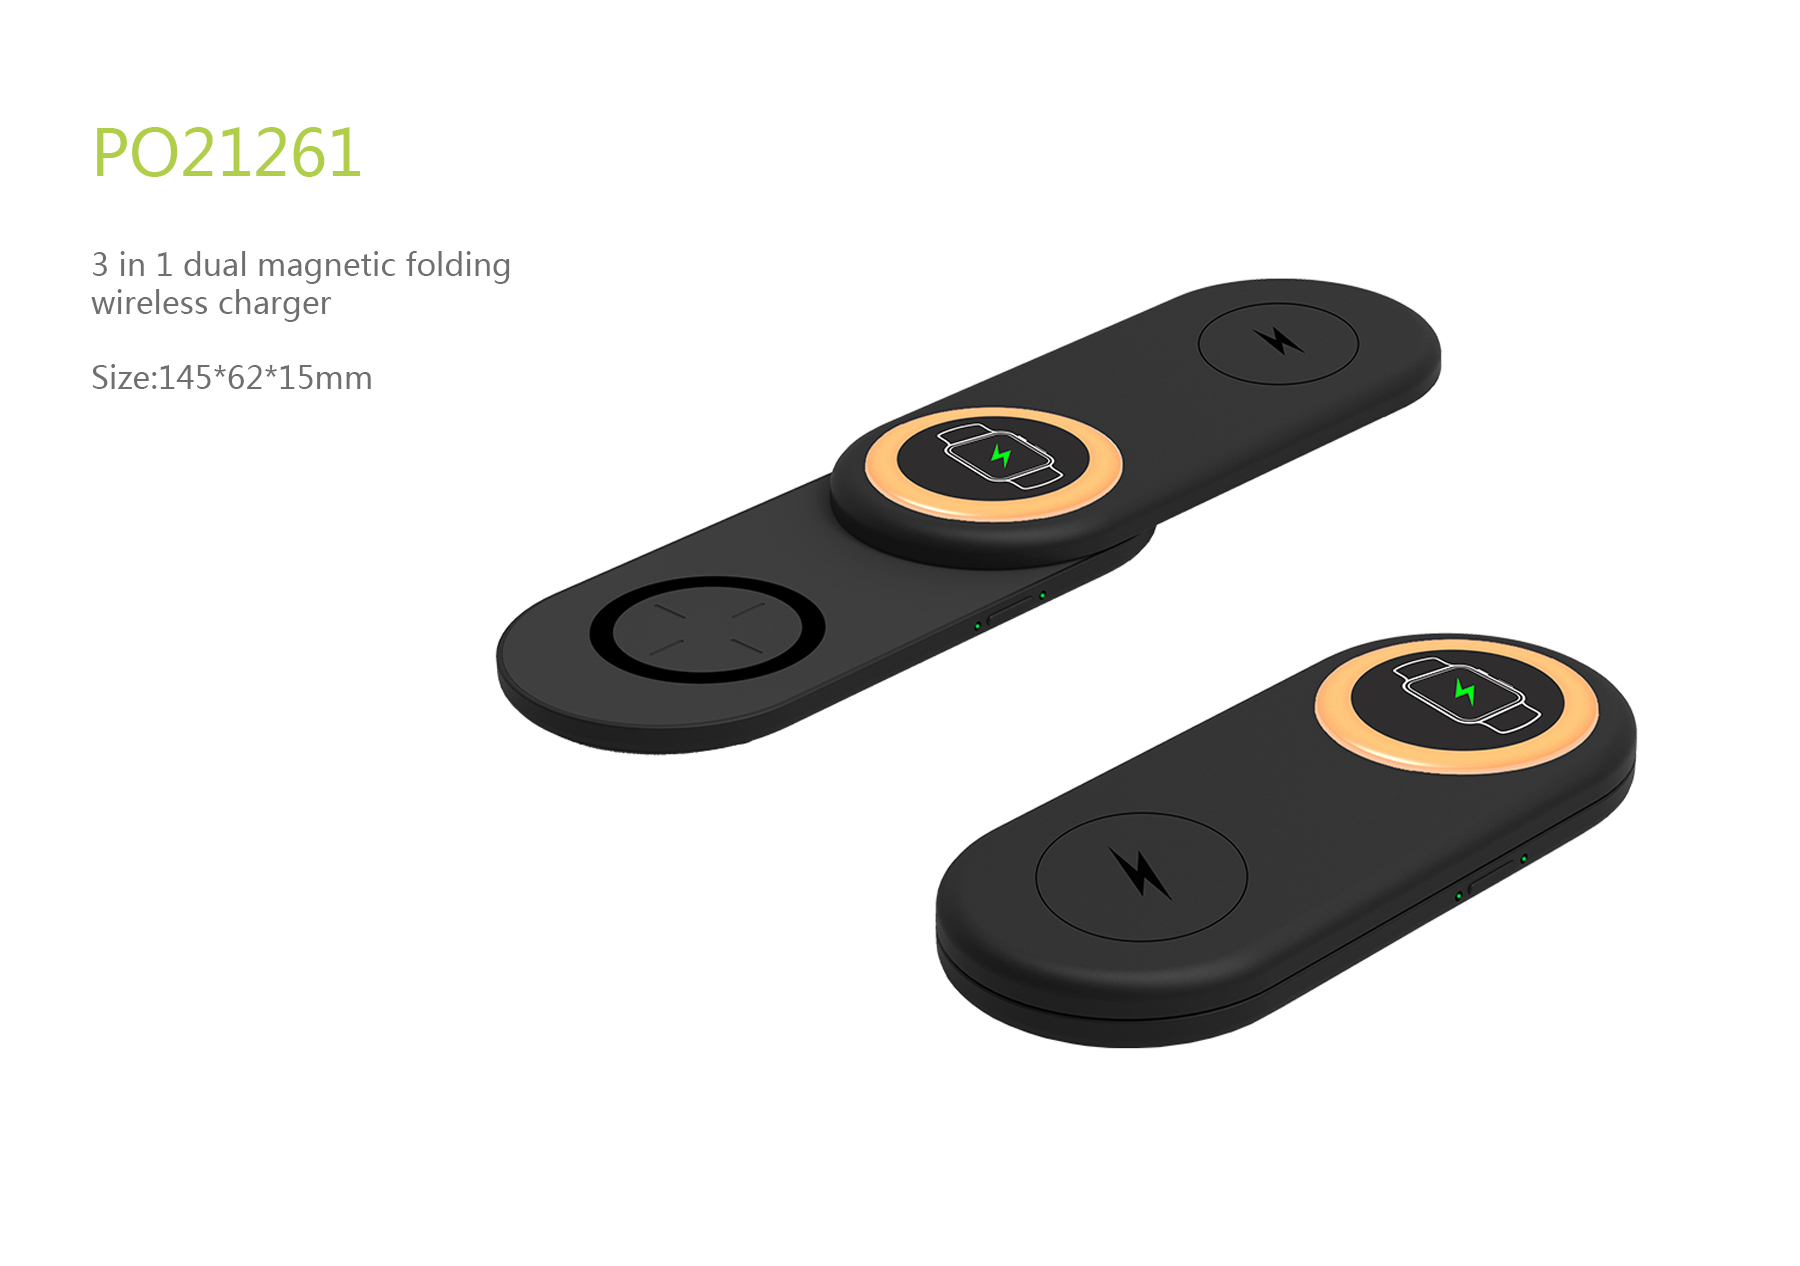 3 in 1 dual magnetic folding wireless charger